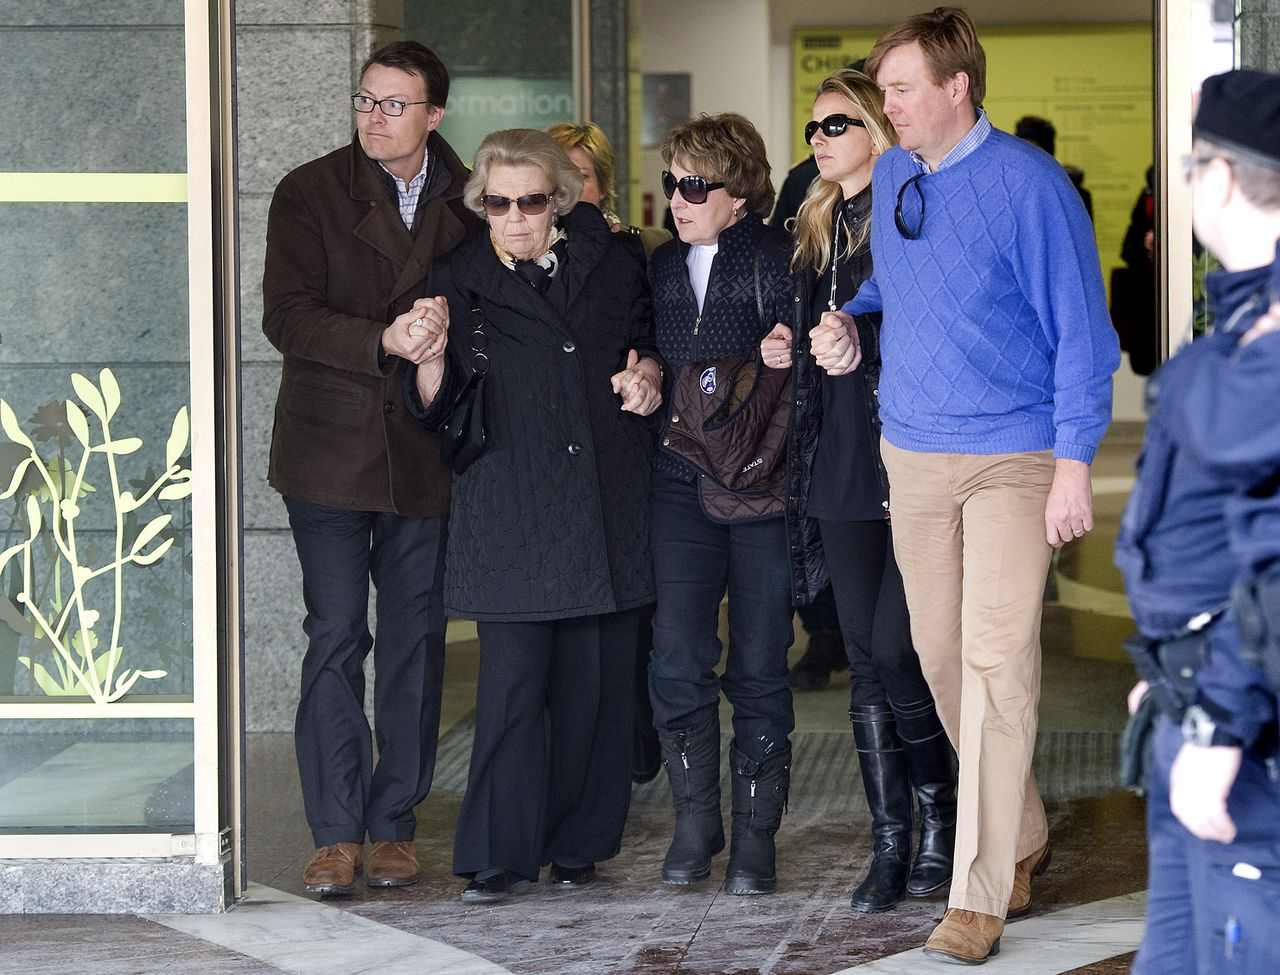 Dutch Prince Constantijn, Queen Beatrix, her sister Margriet Van Vollenhoven, wife of Prince Johan Friso Princess Mabel and Prince Willem Alexander leave the main hospital in Innsbruck, western Austria, Friday, Feb 24, 2012, one week after the Queen's second son Prince Johan Friso was rushed to the intensive care unit of the clinic after he was buried by an avalanche. Doctors treating the Dutch Prince say he suffered massive brain damage and he may never regain consciousness. (AP Photo/Kerstin Joensson)